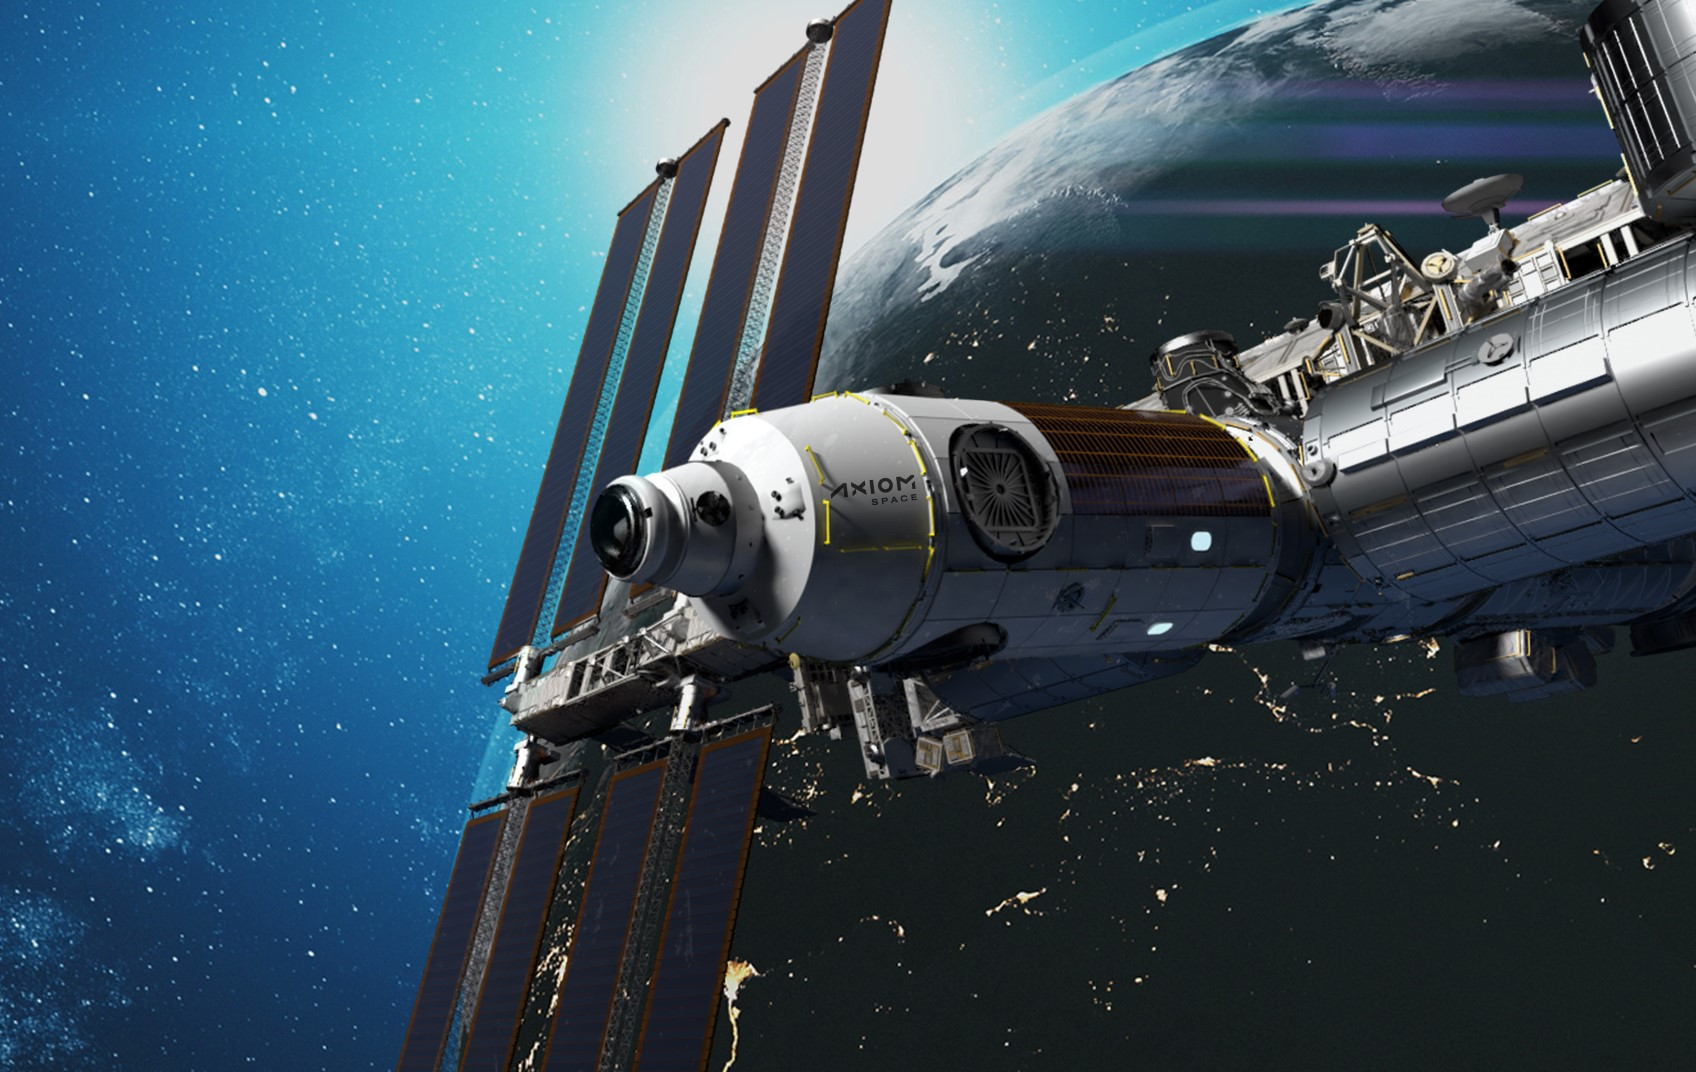 Axiom raises $130M for its space station — and adds Blue Origin alum to its board